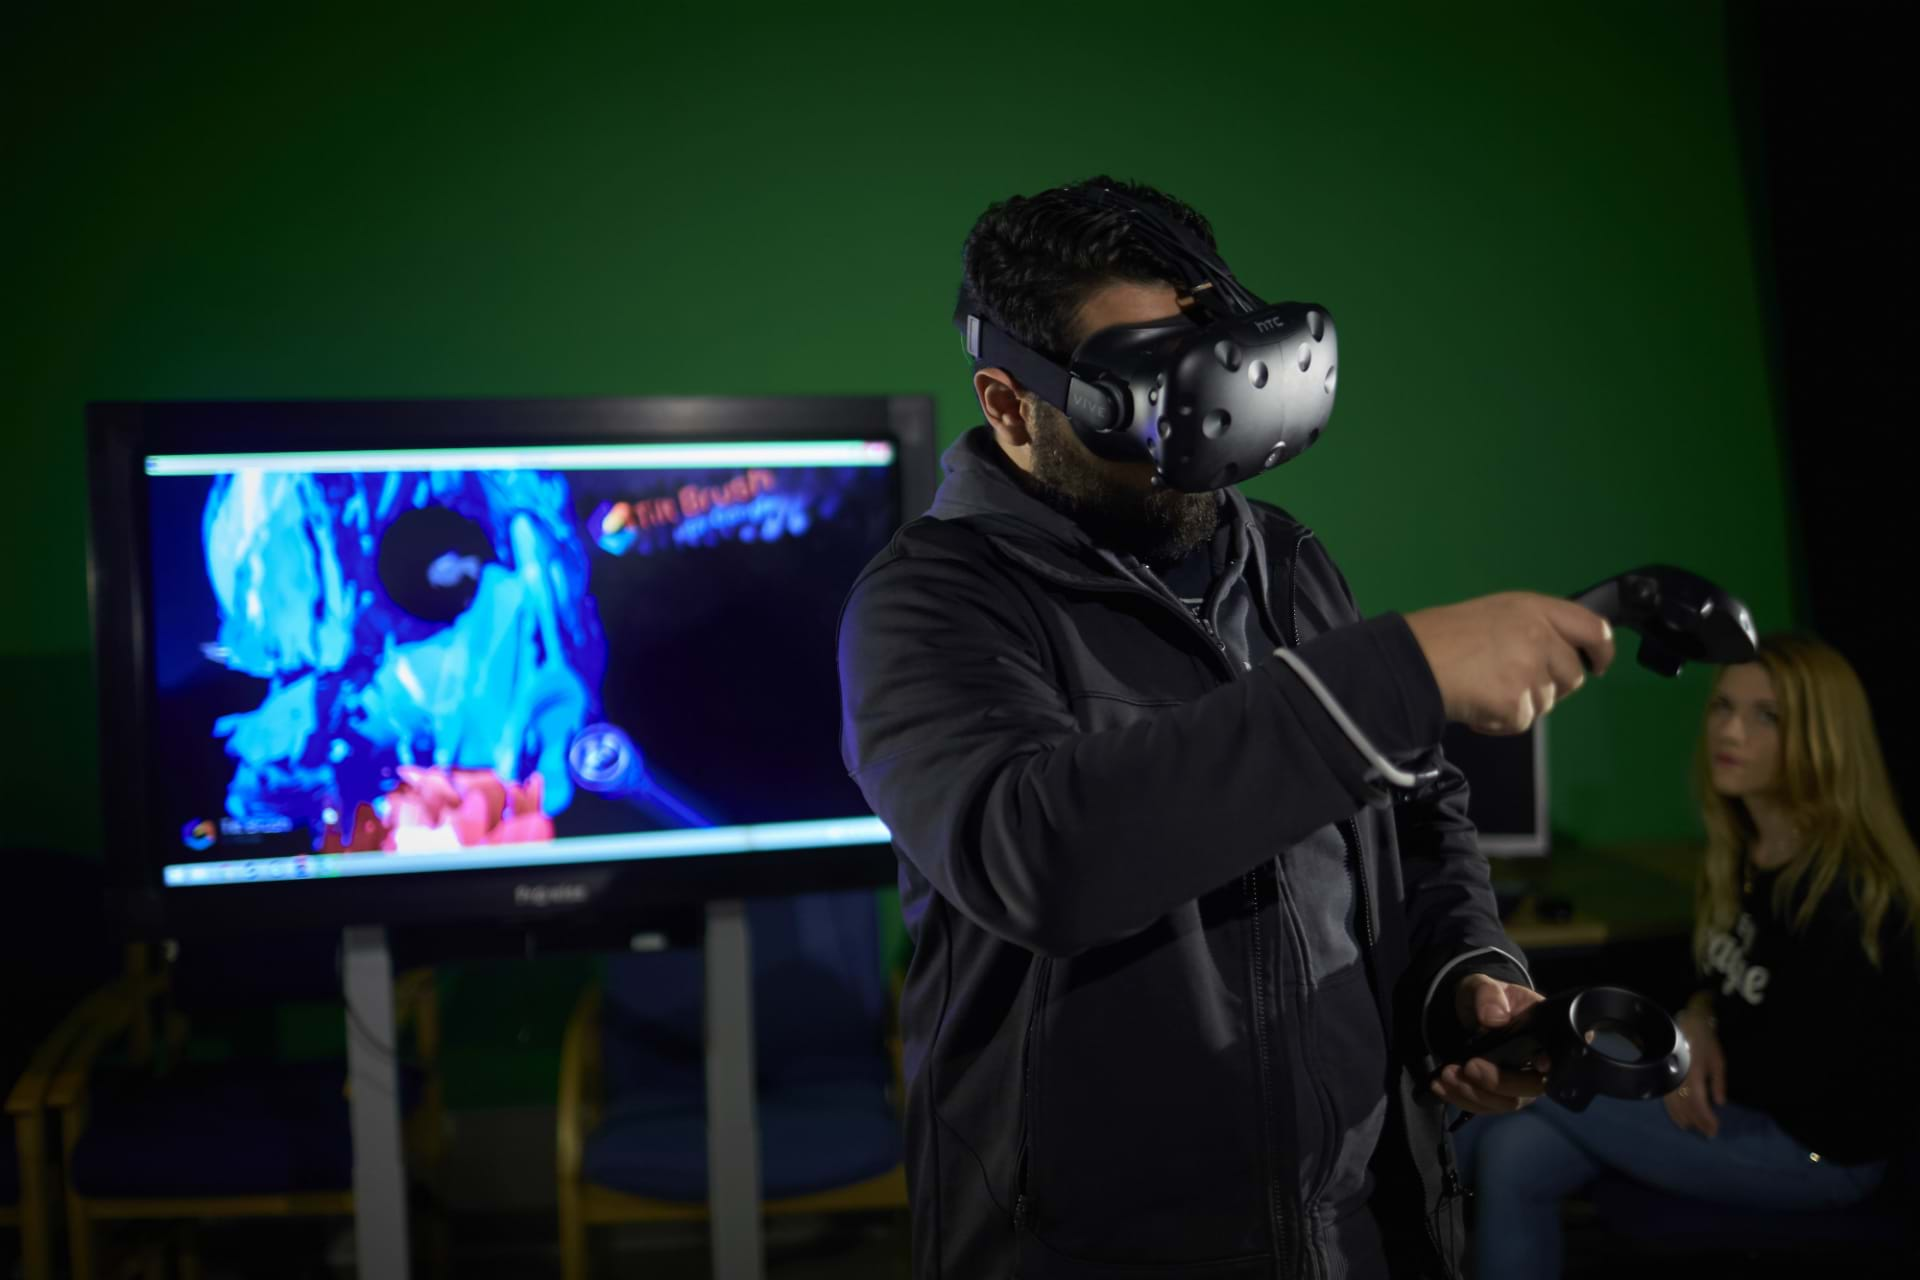 A student using VR